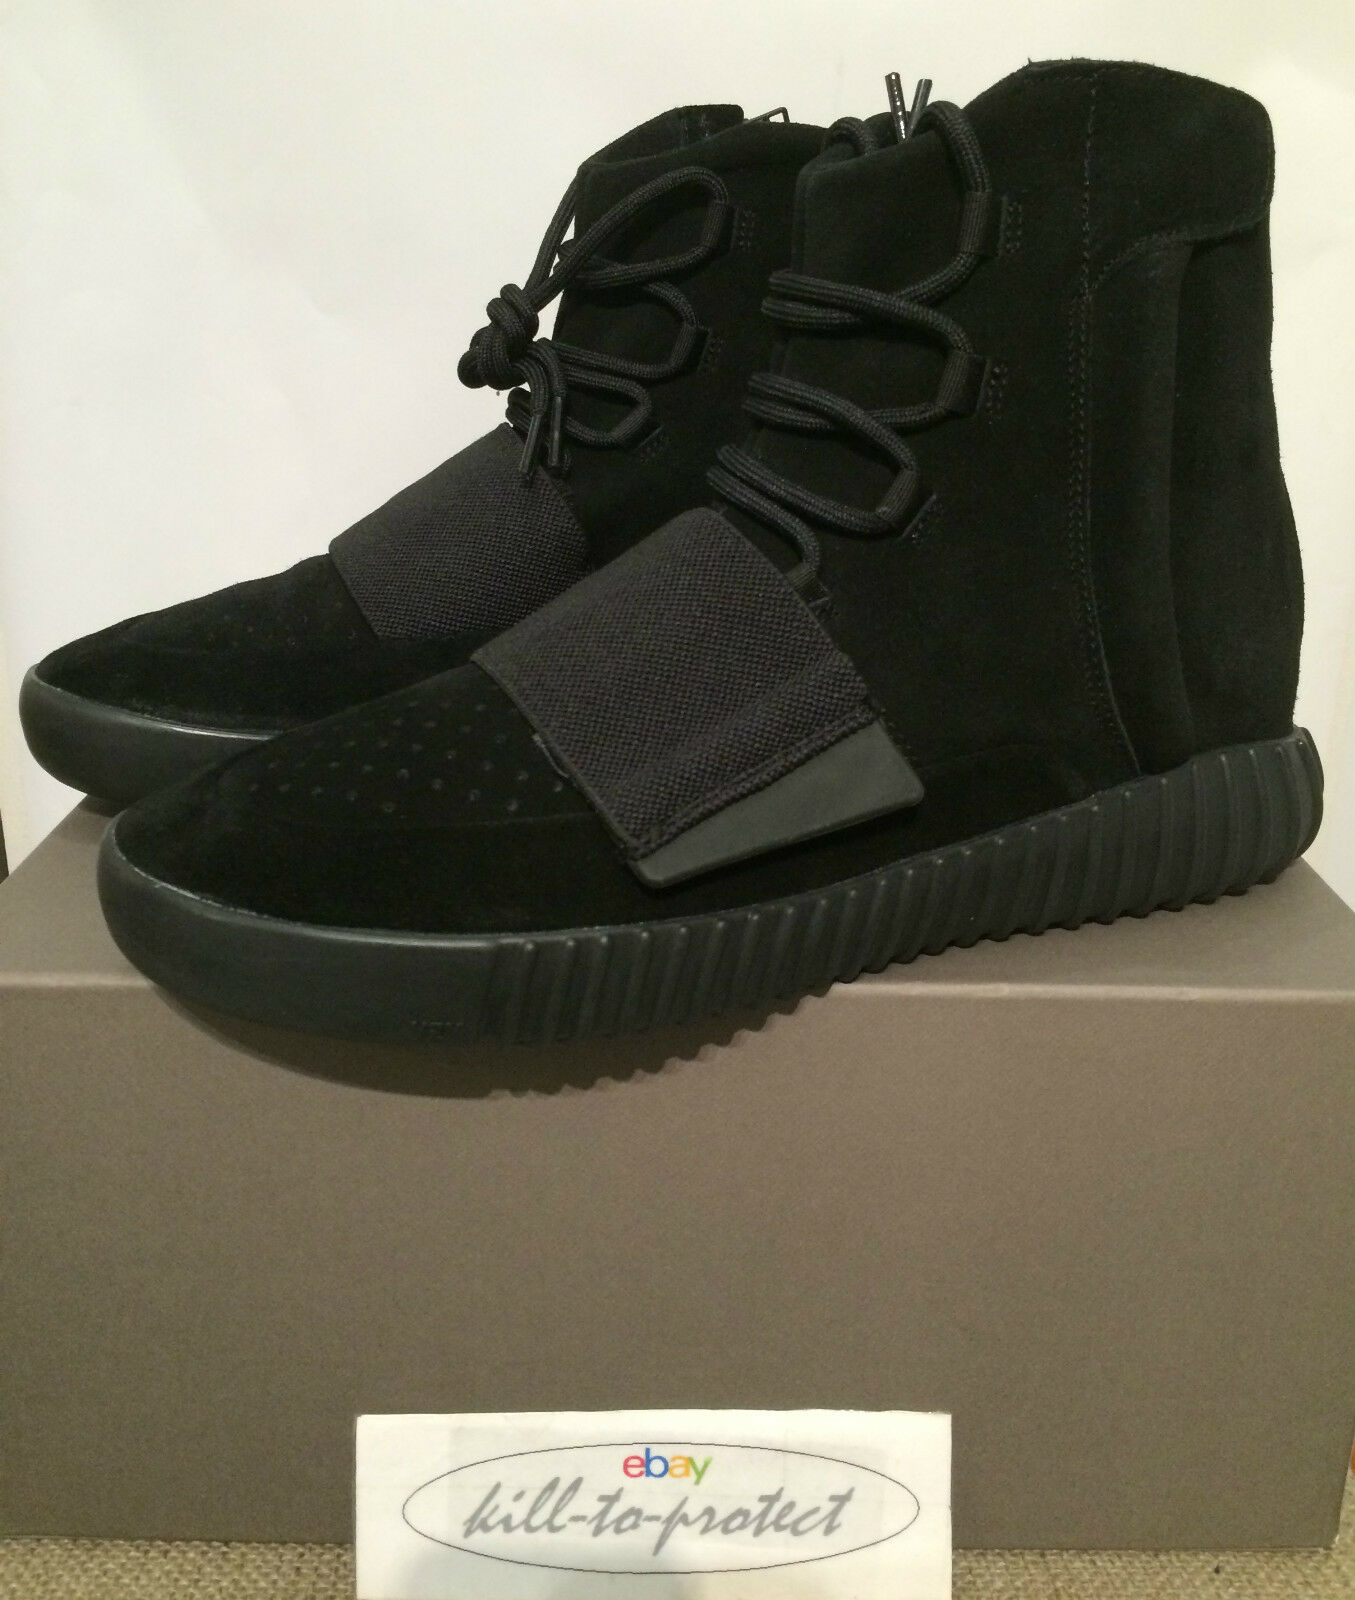 ADIDAS YEEZY BOOST 750 Back Sz US UK5 6 7 8 9 10 11 12 BB1839 Kanye West 2018